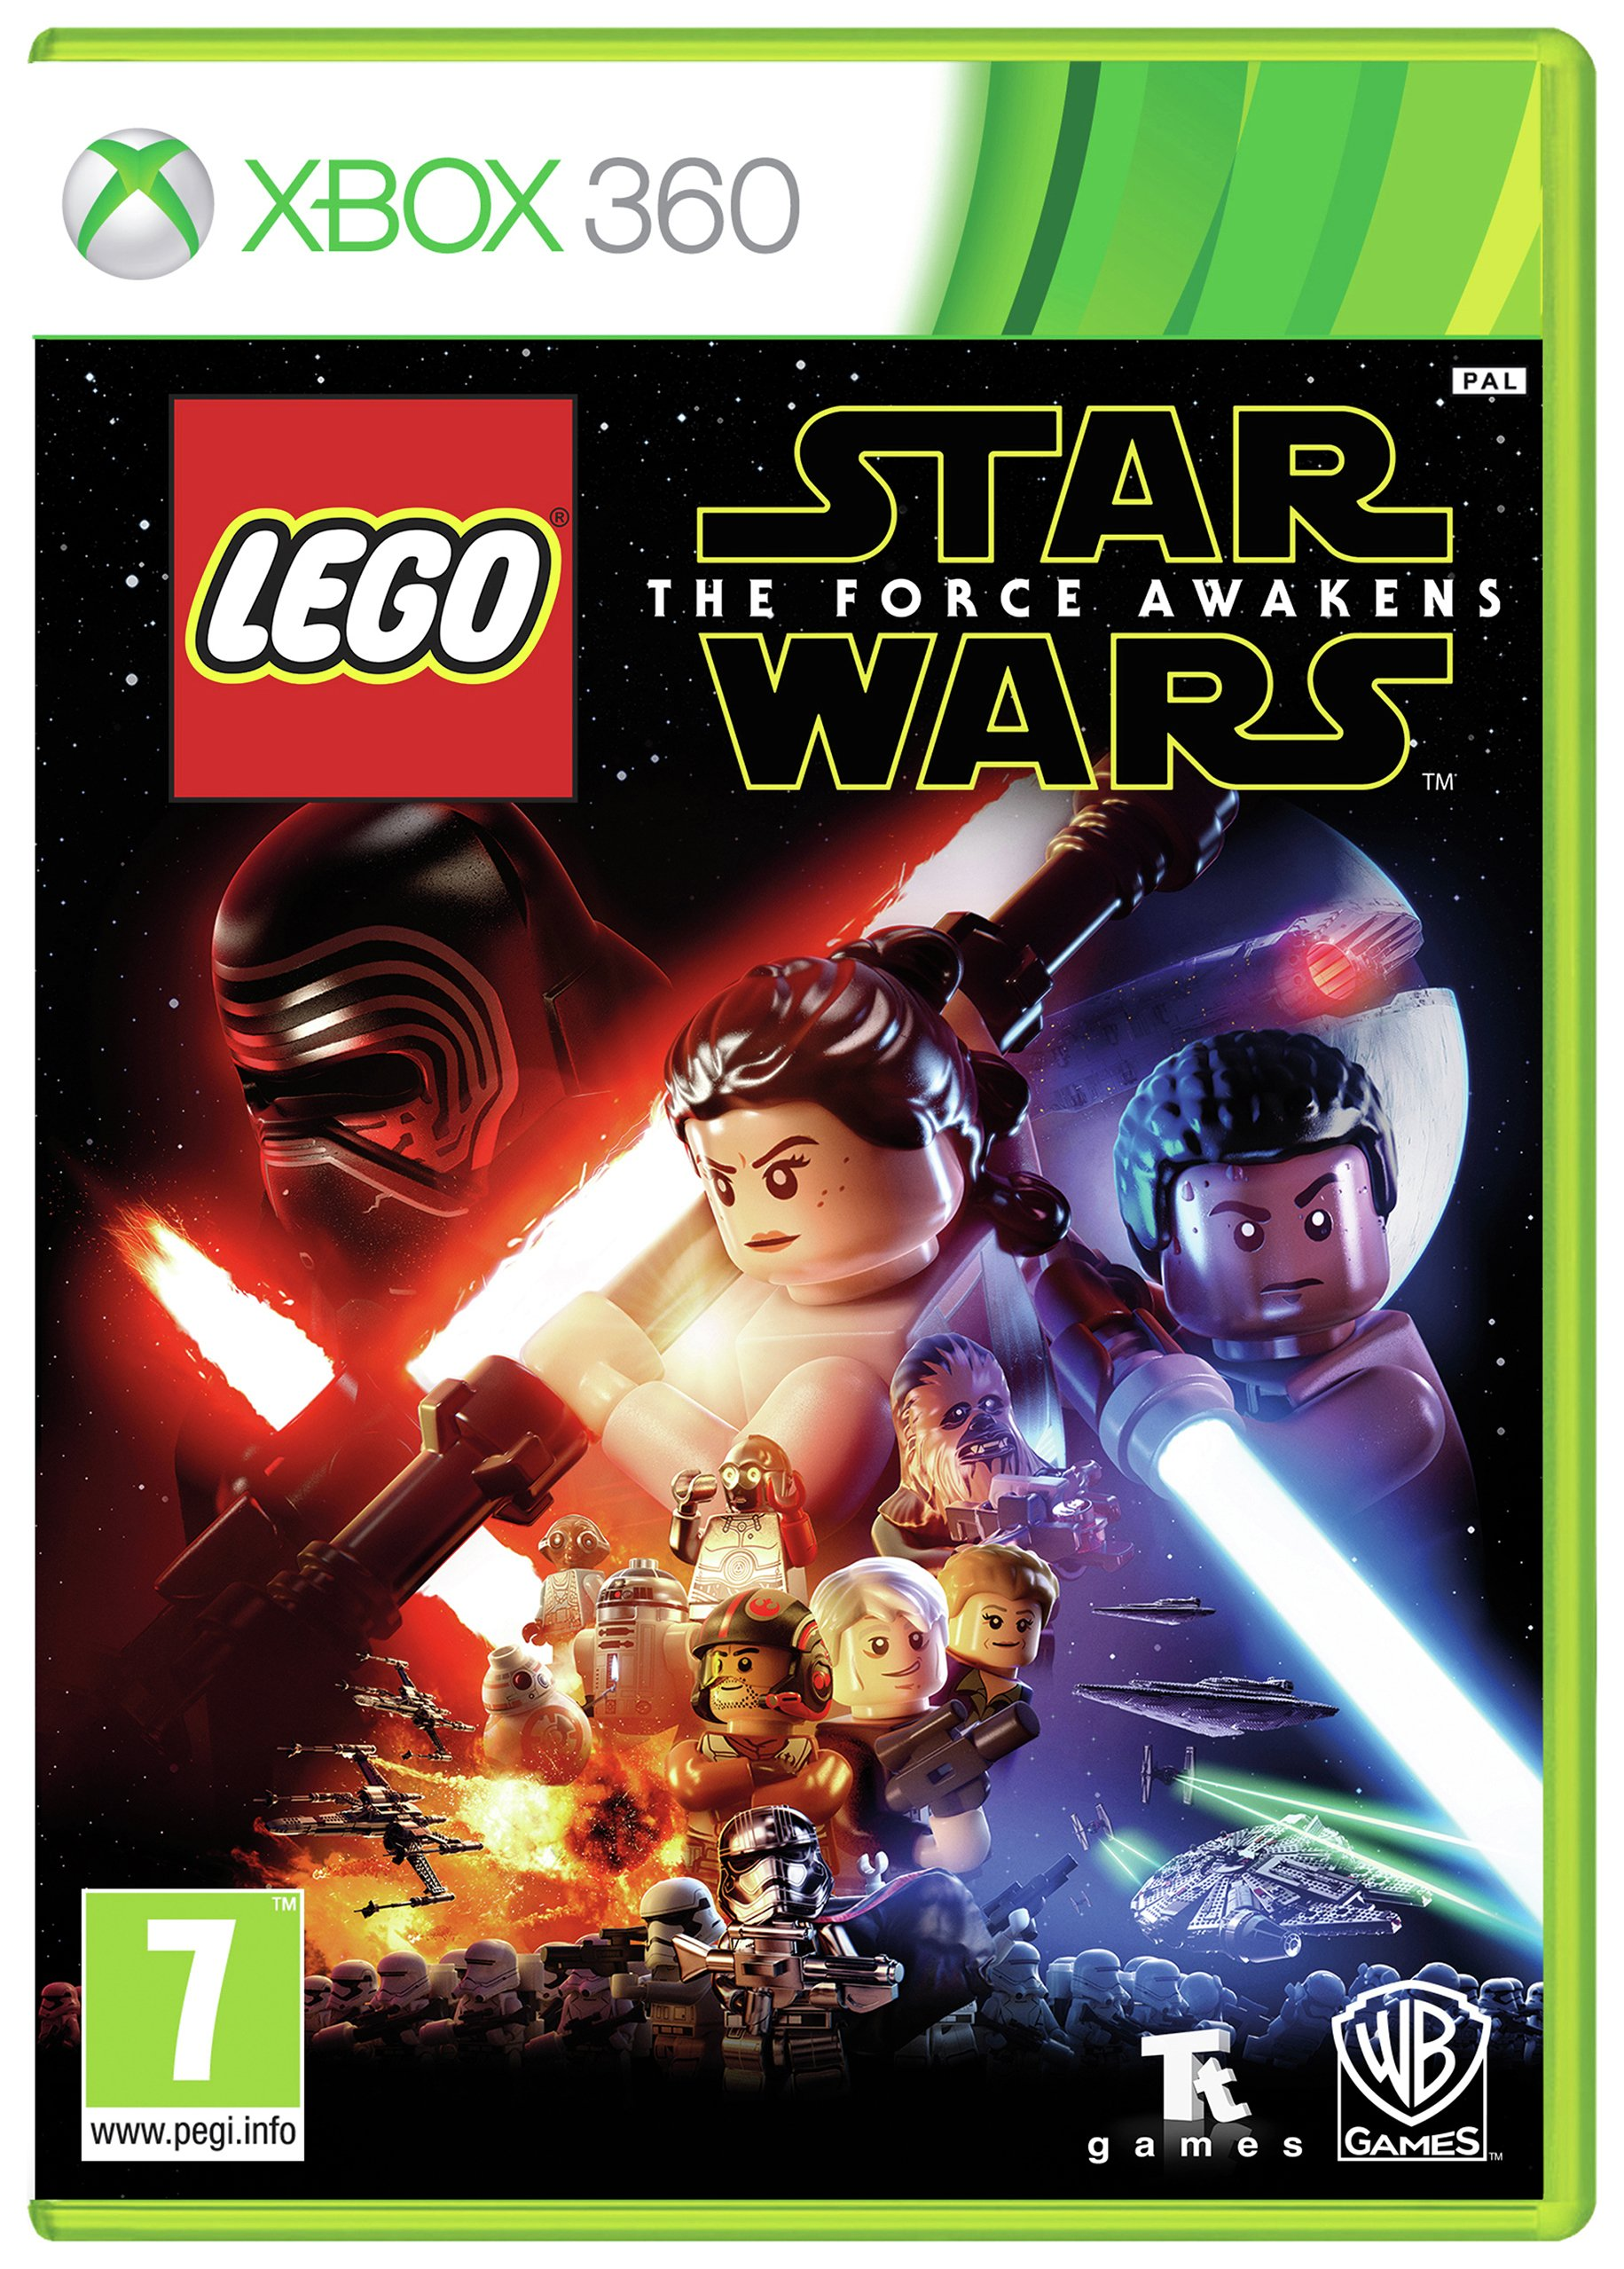 Buy LEGO Star Wars: The Force Awakens Xbox 360 Game | Xbox 360 games ...